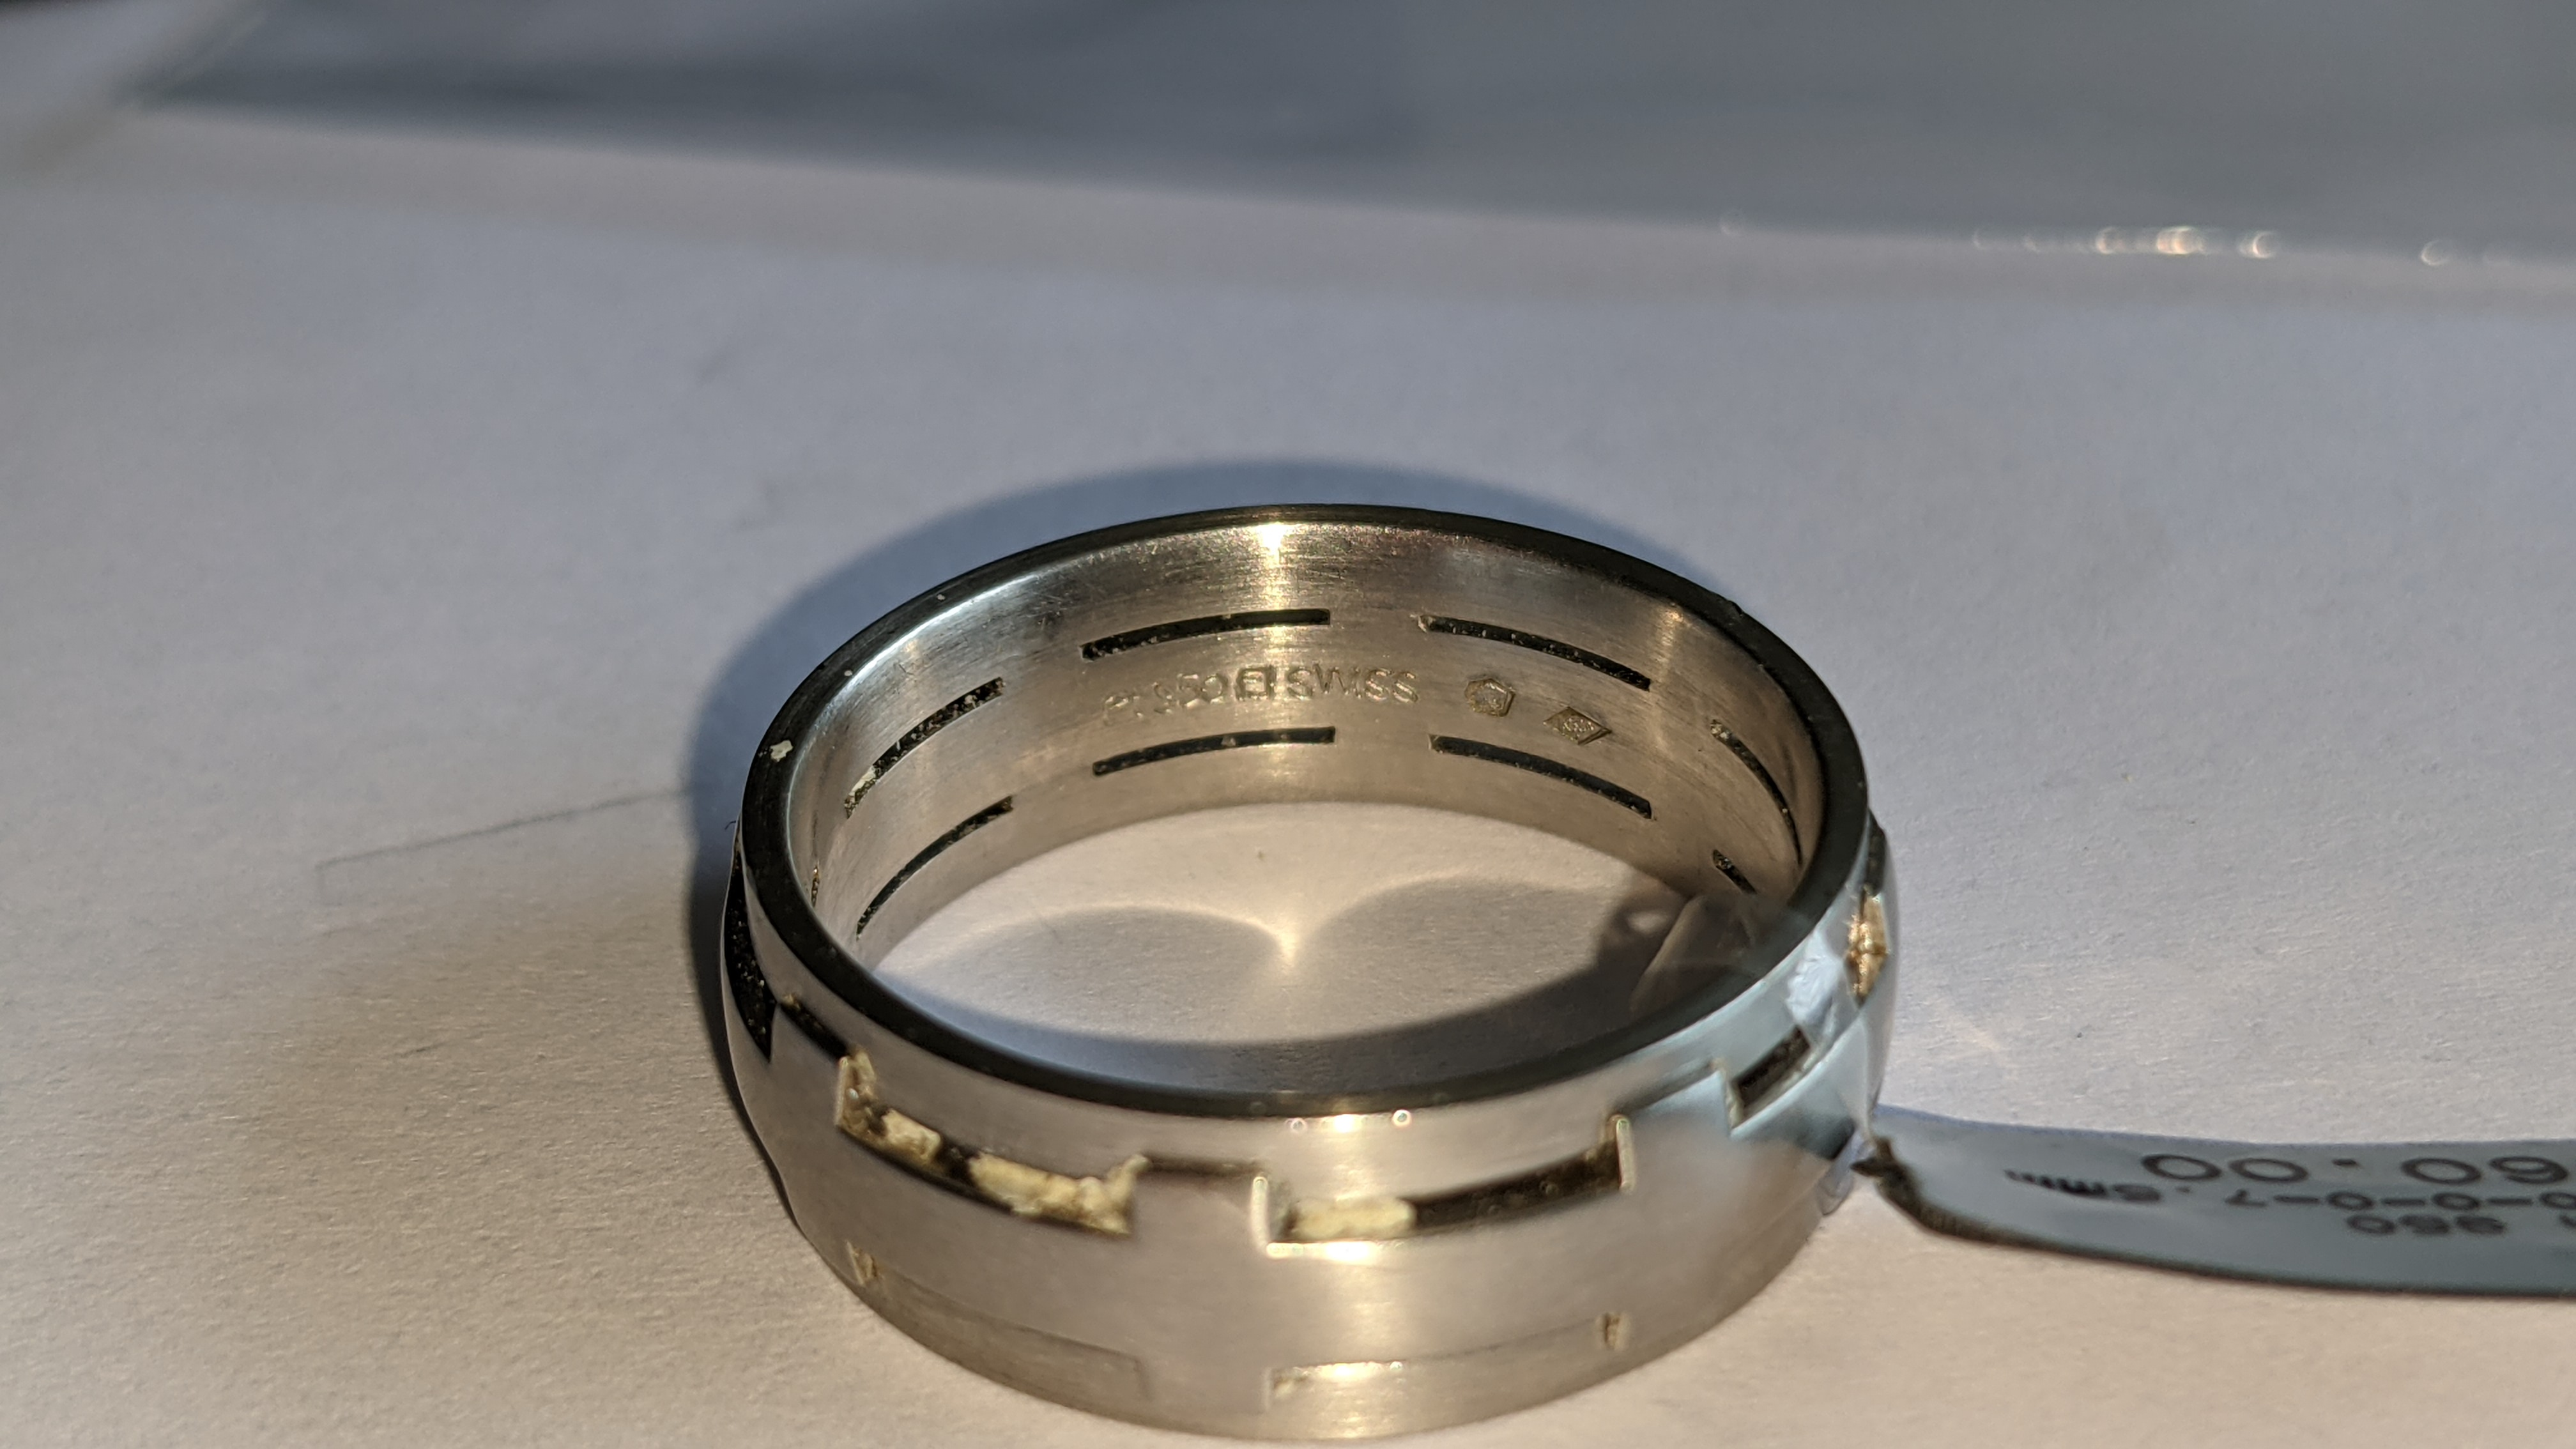 Platinum 950 ring in matt & polished finish, 7.5mm wide. RRP £2,960 - Image 11 of 15